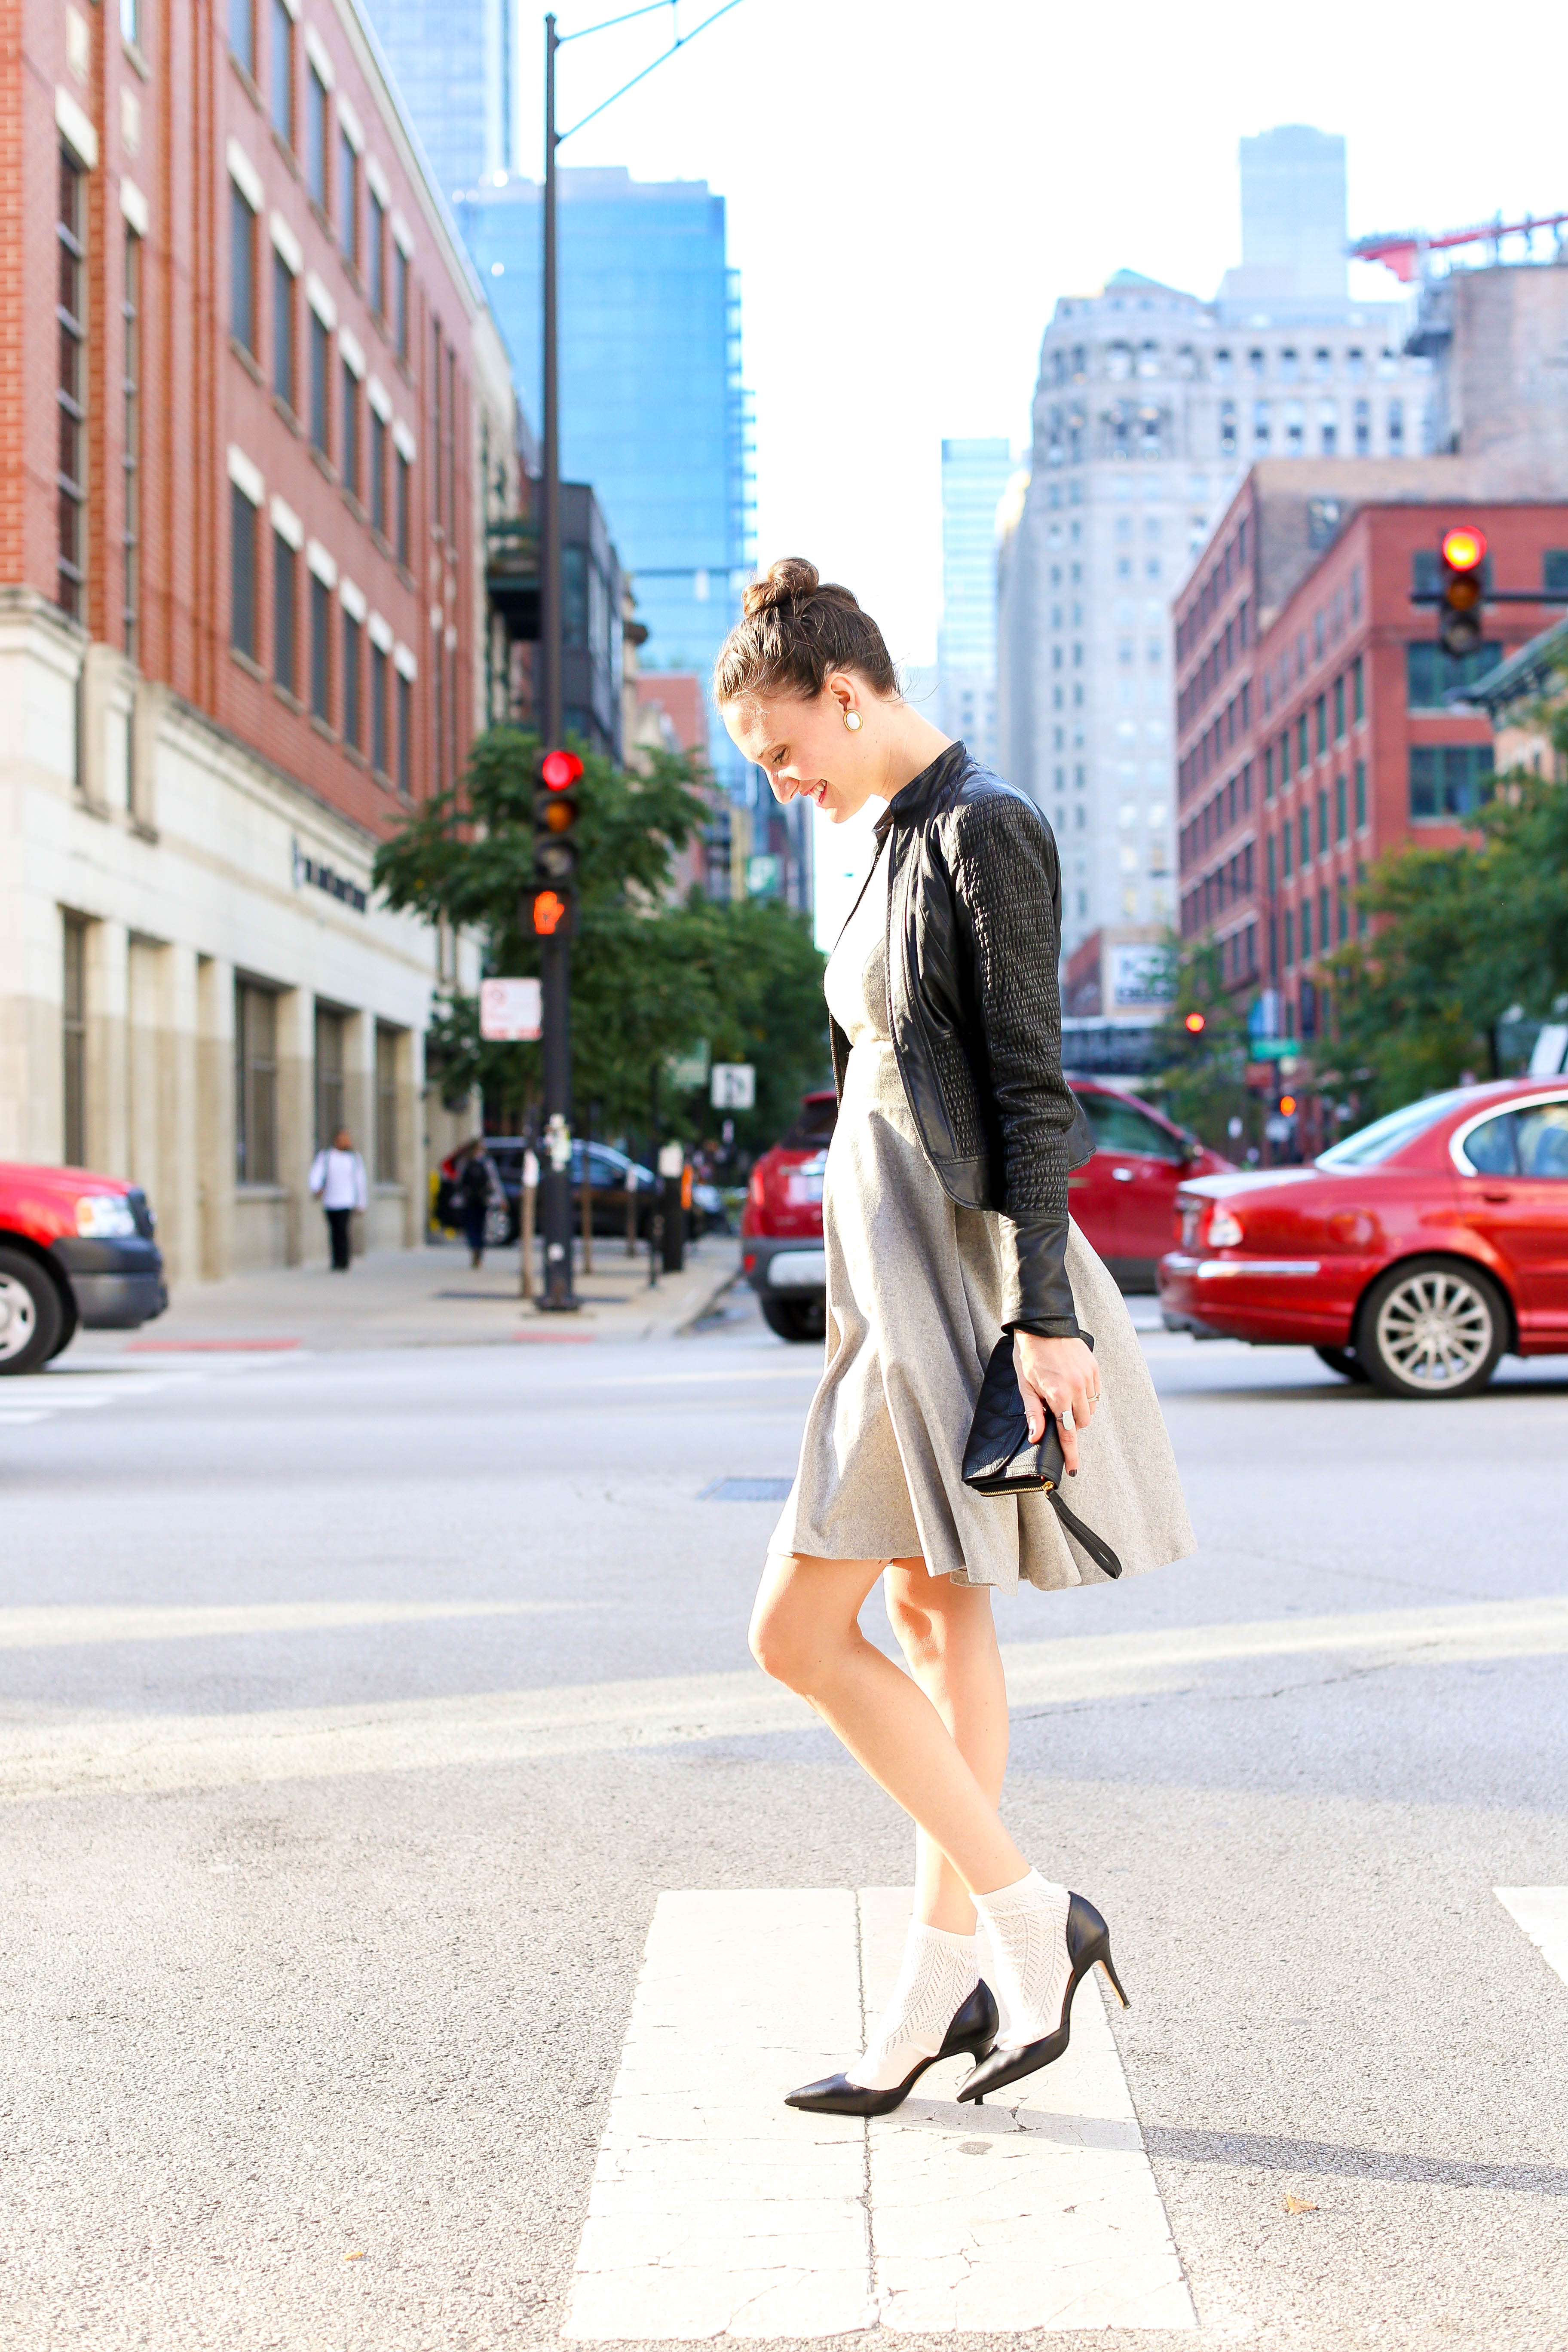 styling-socks-with-heels_isnt-that-charming_top-chicago-fashion-bloggers